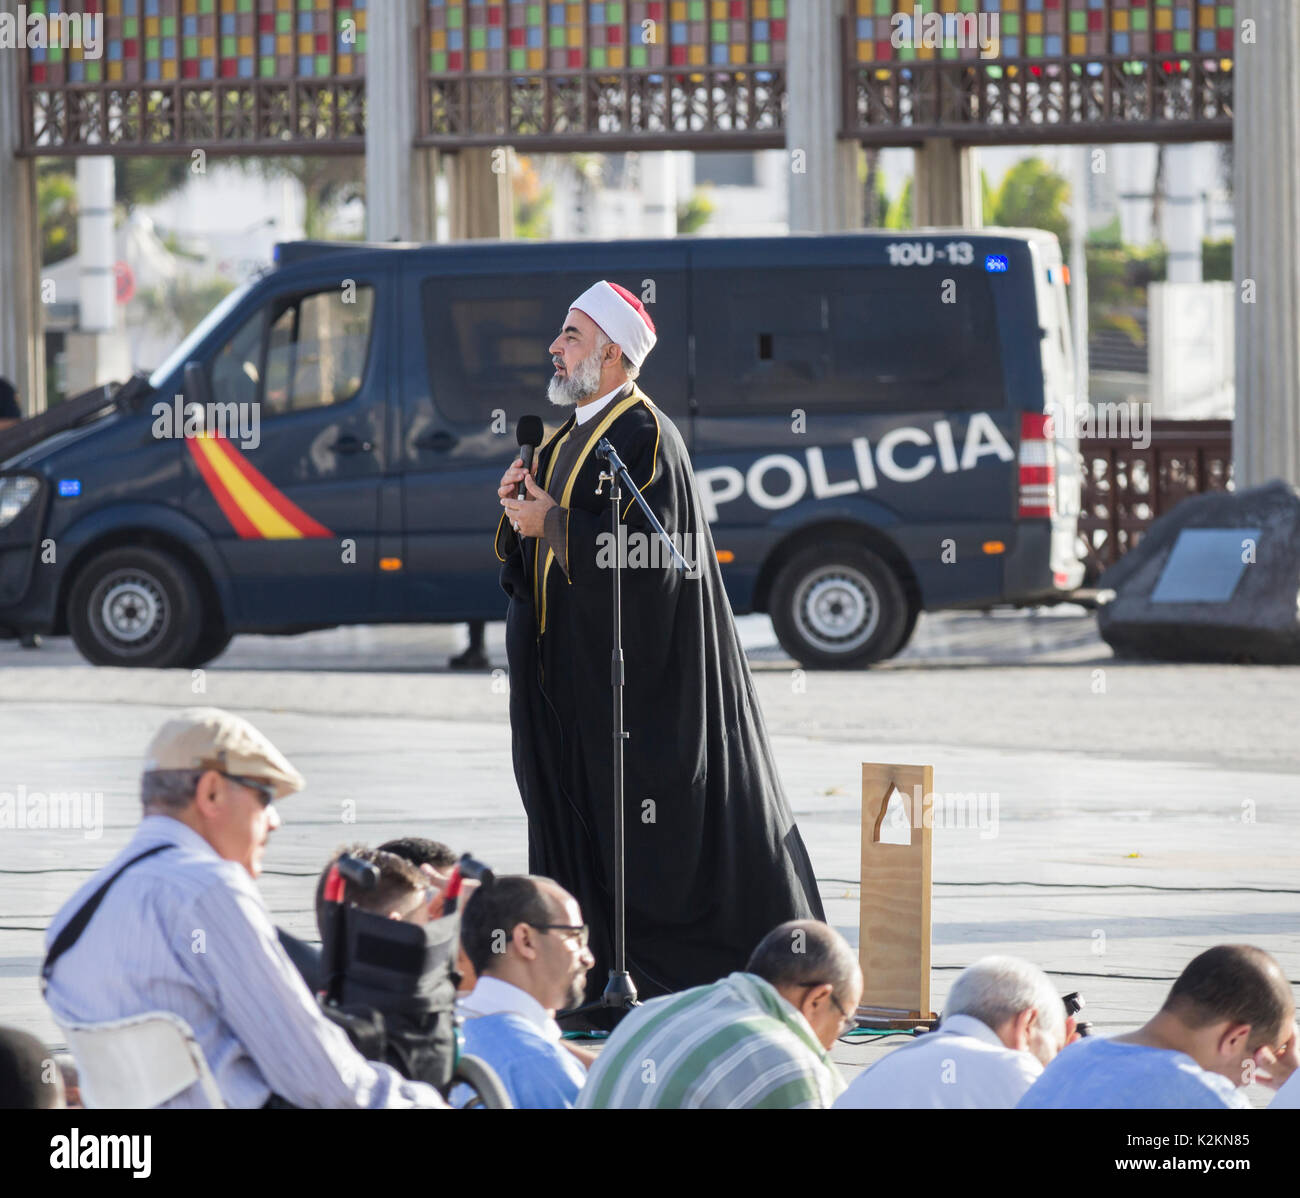 Las Palmas, Gran Canaria, Canary Islands, Spain. 1st September, 2017. Spain: Hundred of Muslims in Las Palmas, the capital of Gran Canaria, gather for prayers to celebrate Eid al-Adha ( 'sacrifice feast') on Friday morning. PICTURED: An Iman speaks to hundreds gathers for Eid al-Adha prayers with Spanish police in close proximity. - Stock Image